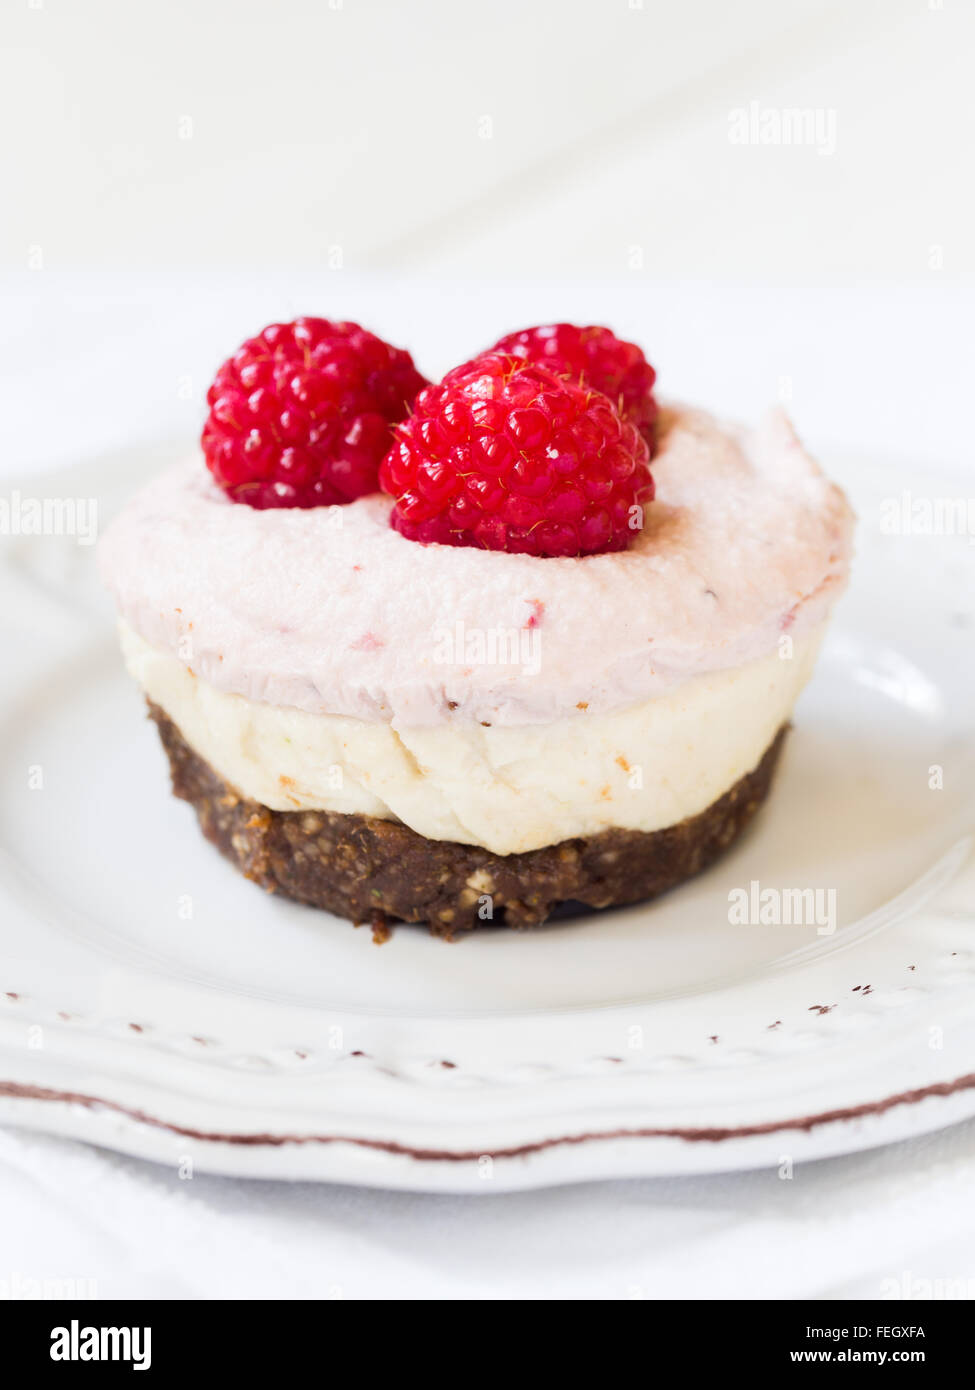 Vegan mini three colors 'cheesecake' made of cashew nuts, coconut cream and dates, served with raspberries. - Stock Image